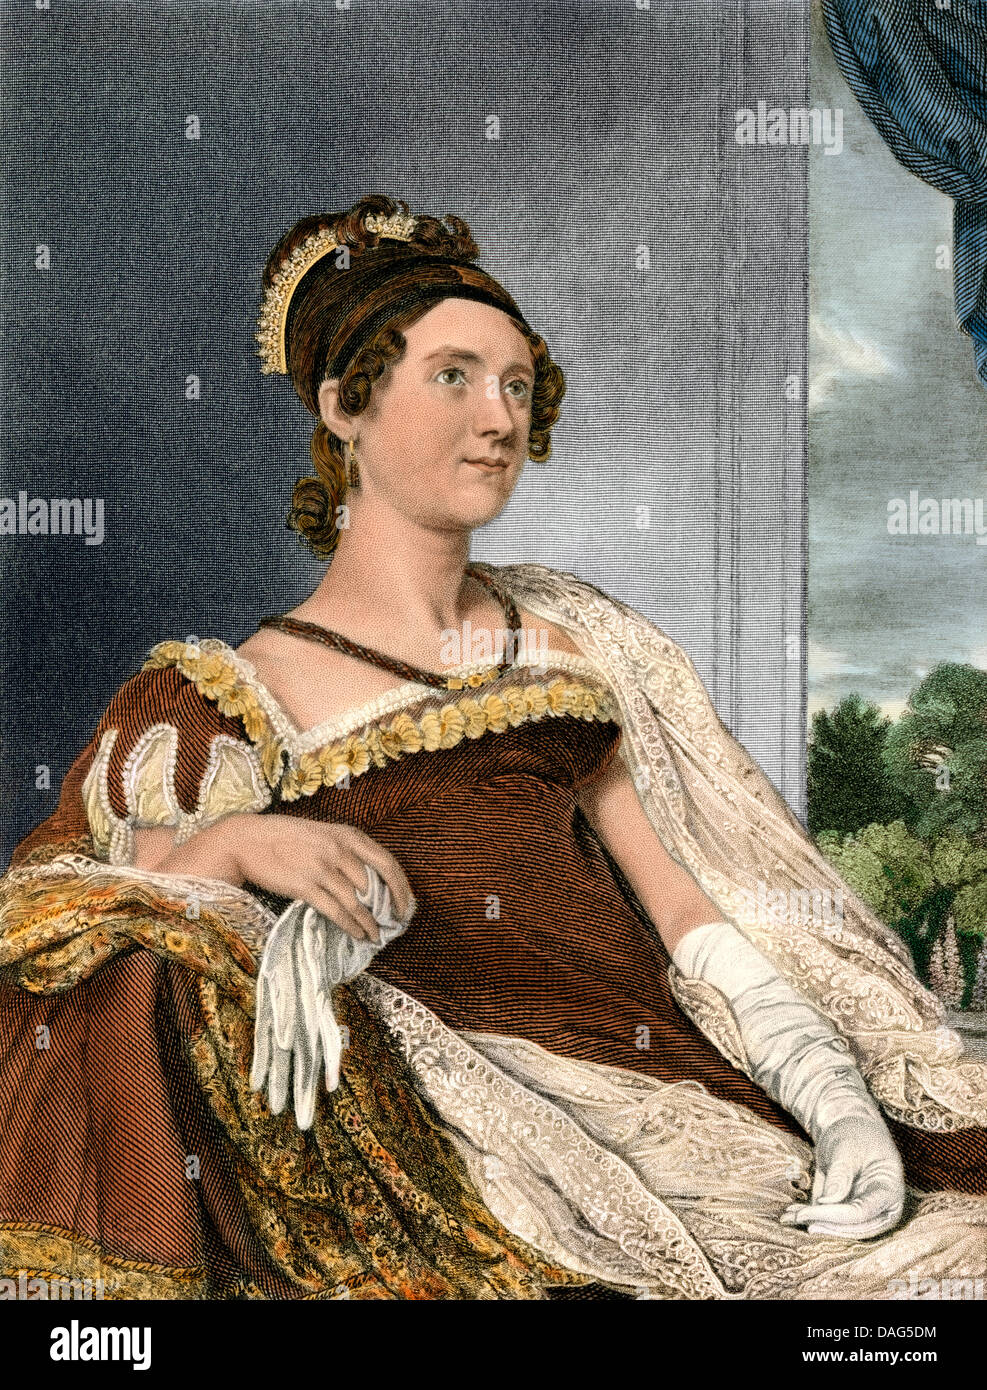 Portrait of First Lady Louisa Catherine Adams, wife of John Quincy Adams, early 1800s. Digitally colored engraving - Stock Image